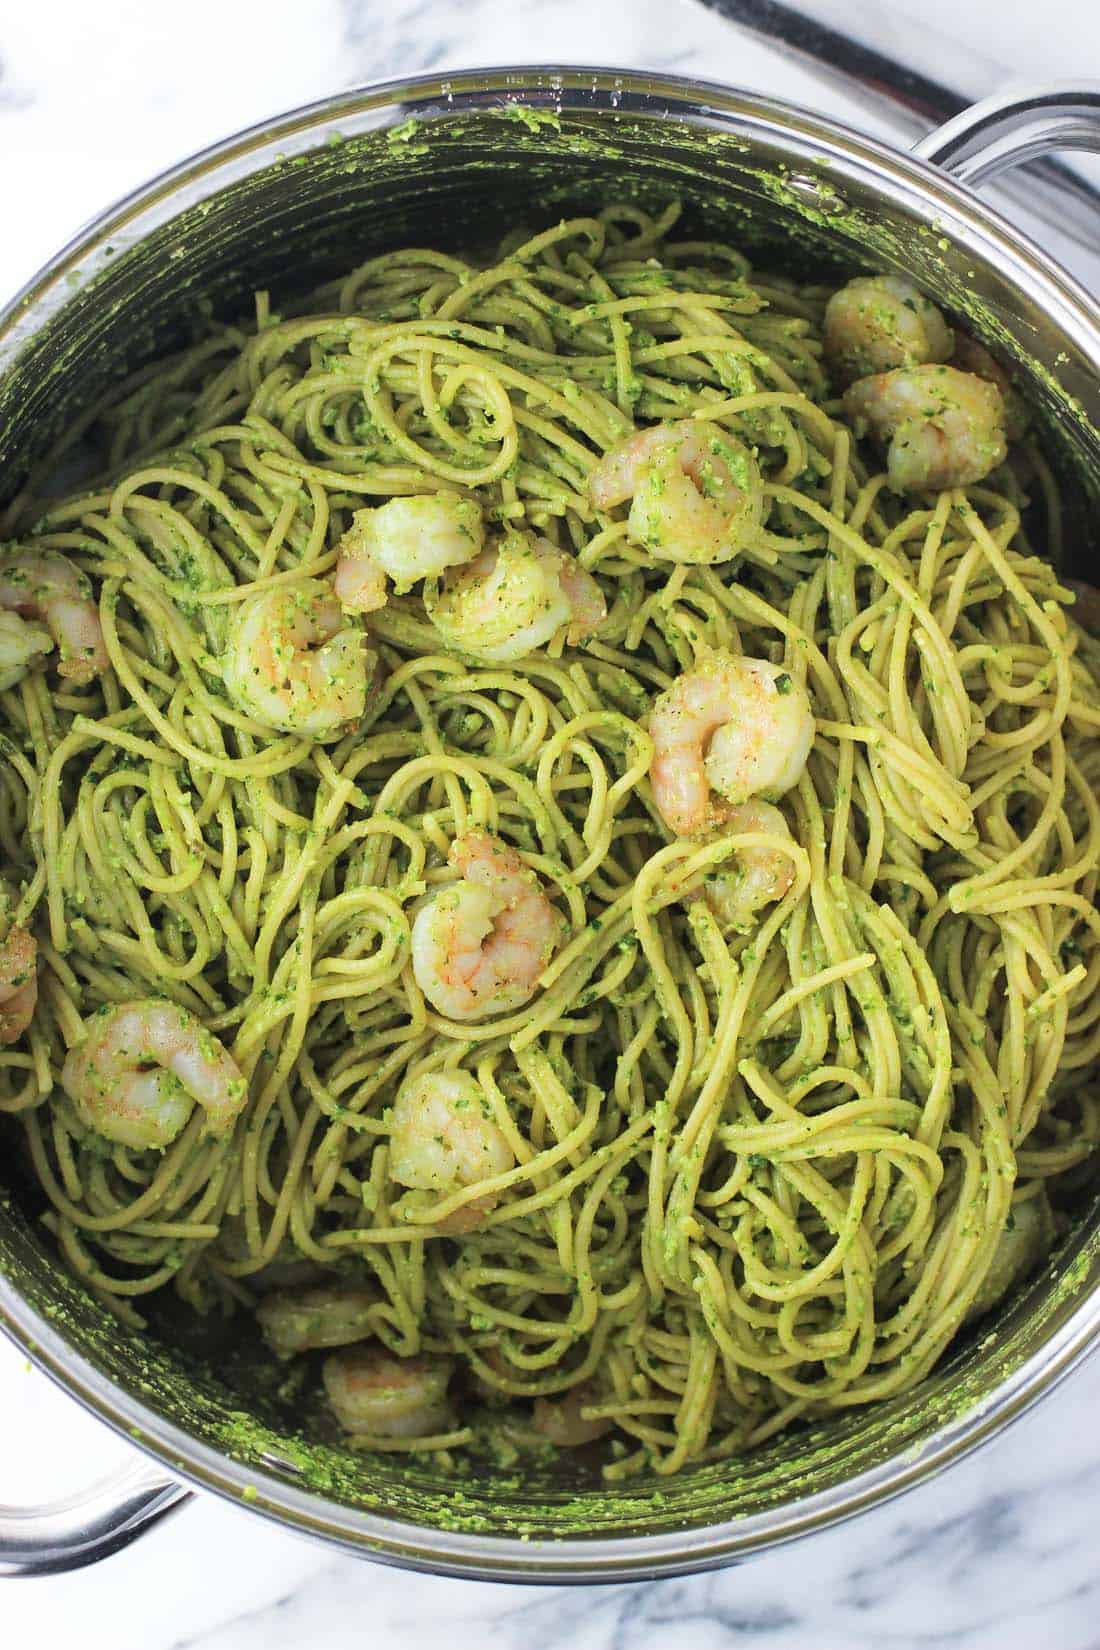 Pesto shrimp pasta makes a great main dish with spinach avocado pesto sauce and shrimp. A few ingredient swaps boost the nutrition of traditional pasta.